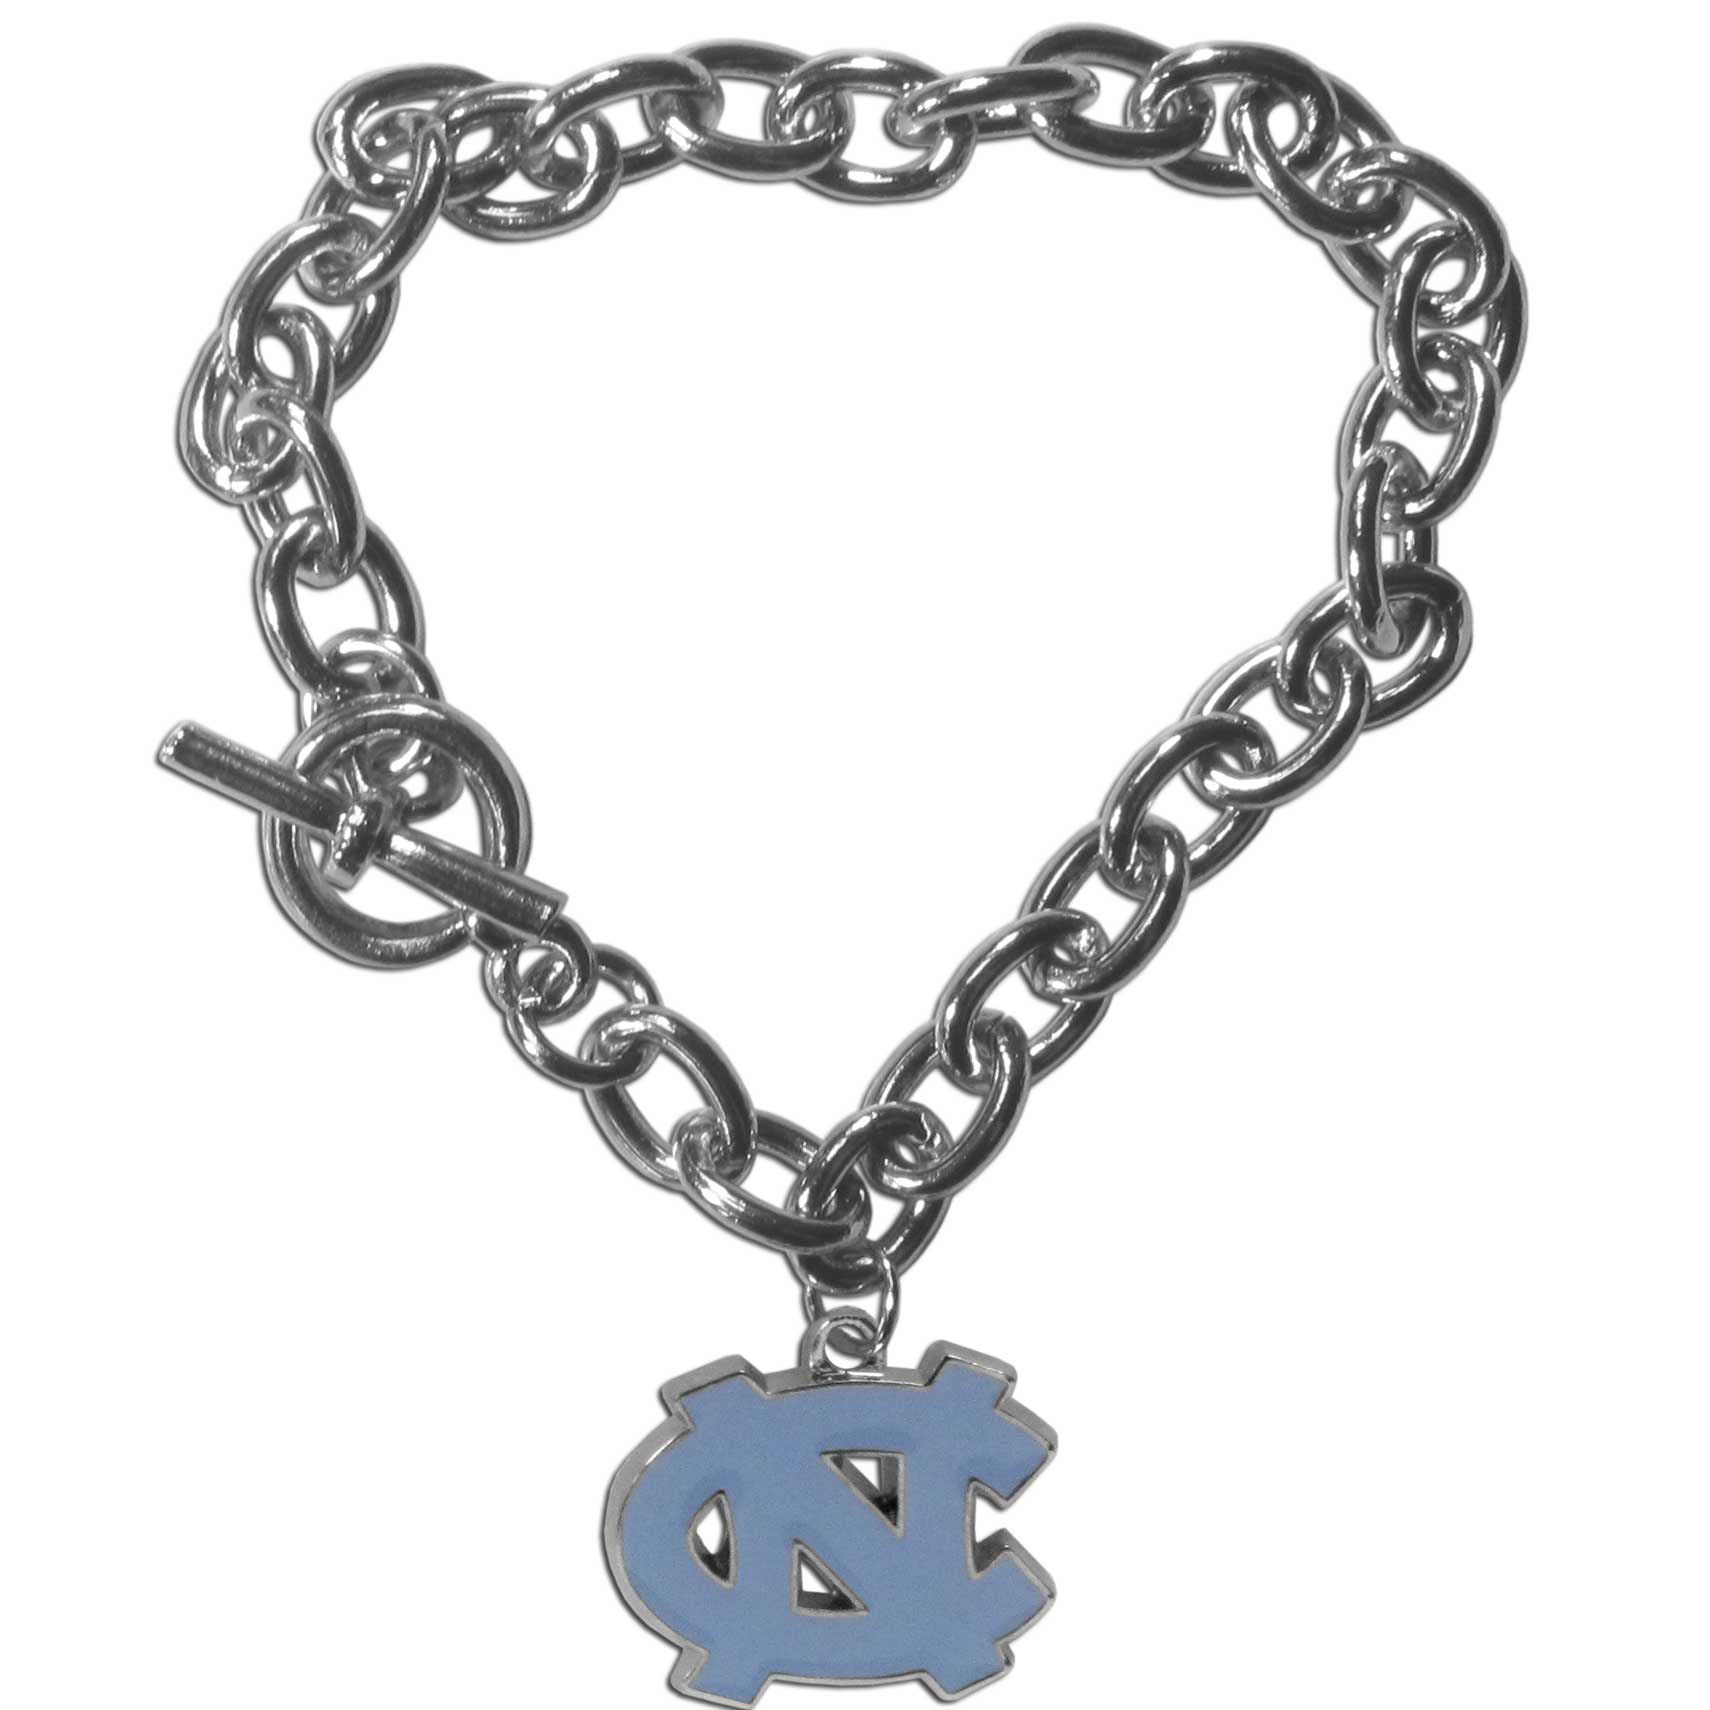 N. Carolina Tar Heels Charm Chain Bracelet - Our classic single charm bracelet is a great way to show off your team pride! The 7.5 inch large link chain features a high polish N. Carolina Tar Heels charm and features a toggle clasp which makes it super easy to take on and off.